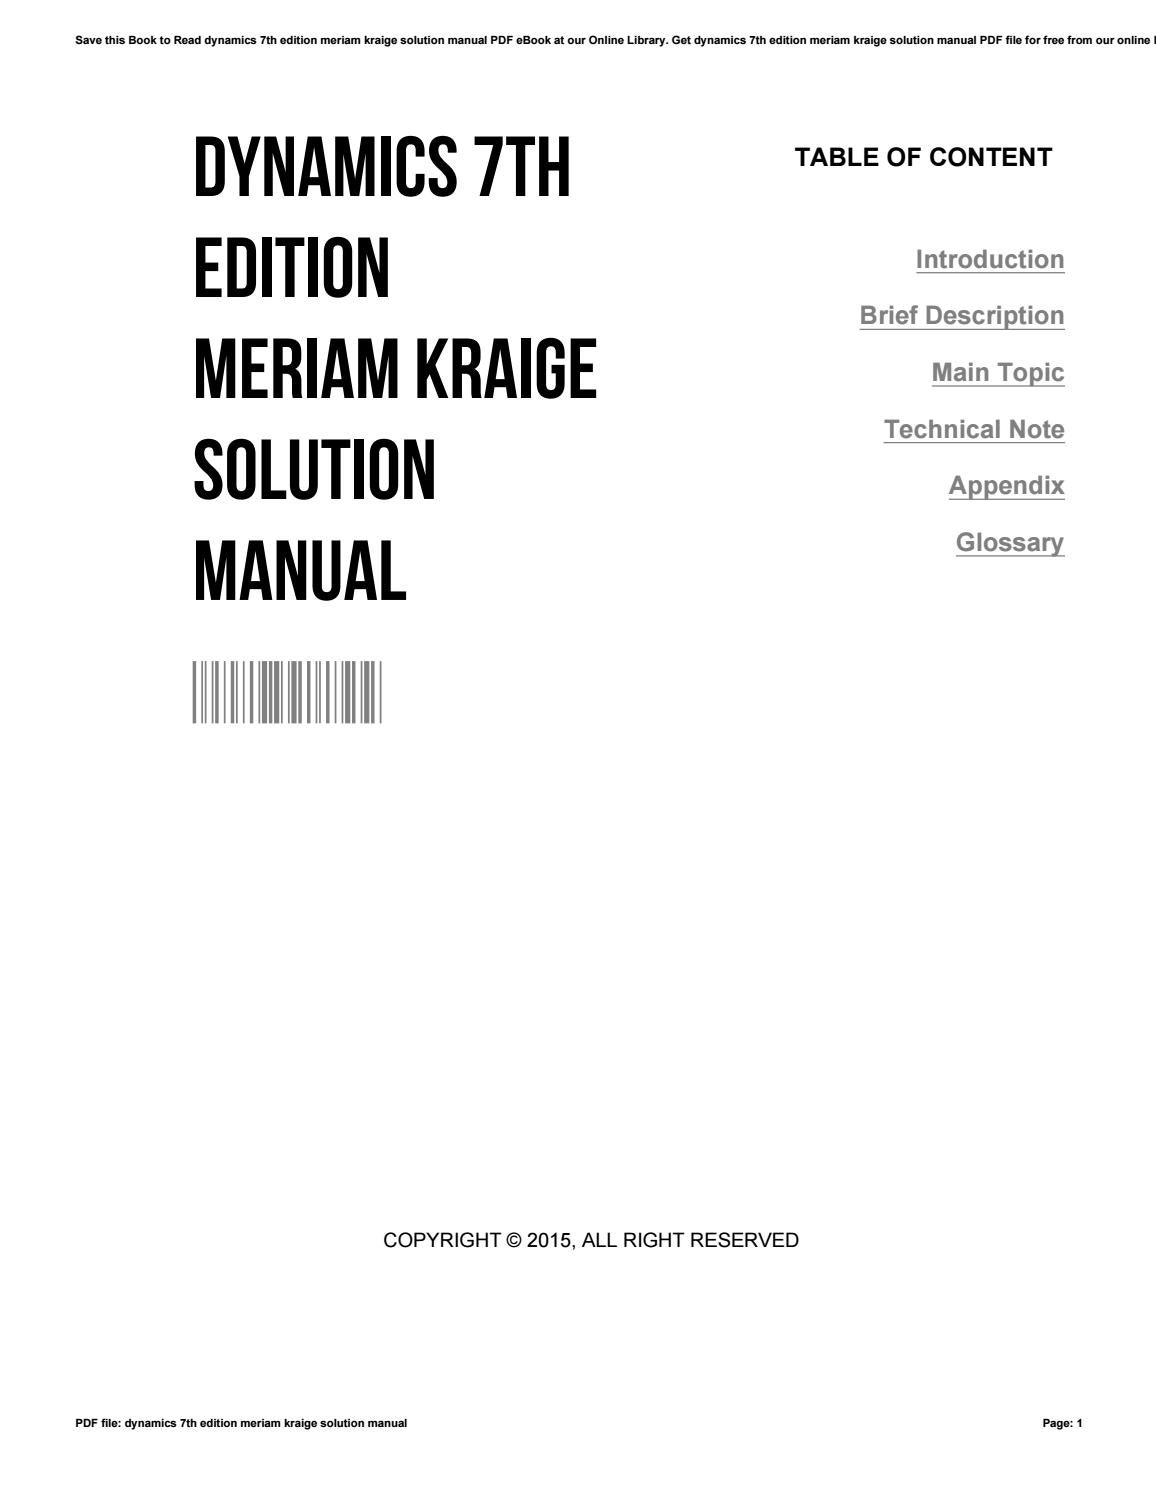 Engineering mechanics dynamics 7th edition solution manual pdf 28 engineering mechanics dynamics 7th edition solution manual pdf engineering mechanics dynamics 7th edition solution manual fandeluxe